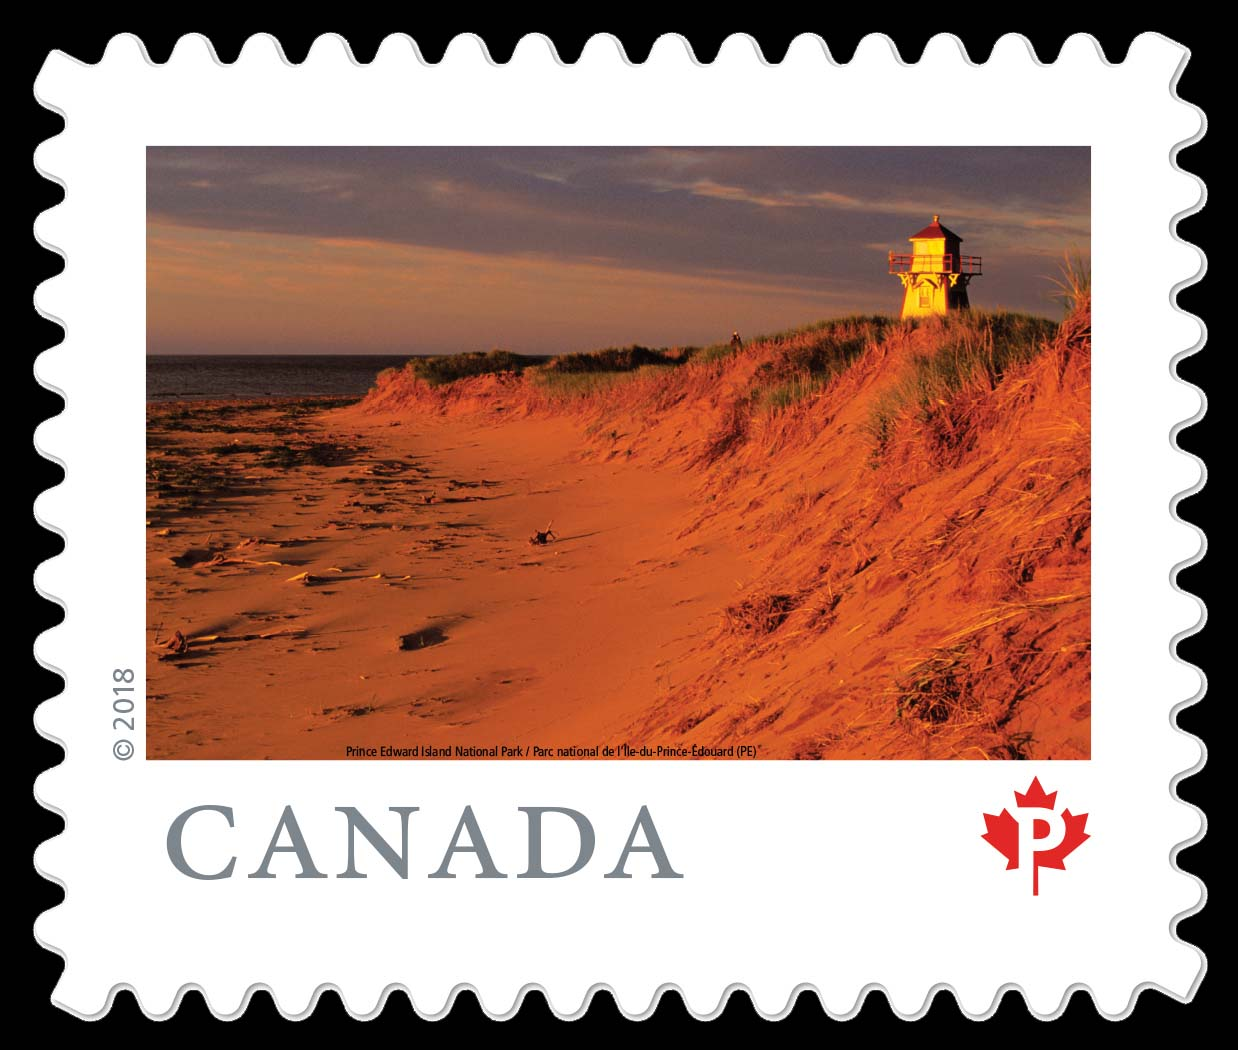 Prince Edward Island National Park (PE) Canada Postage Stamp | From Far and Wide